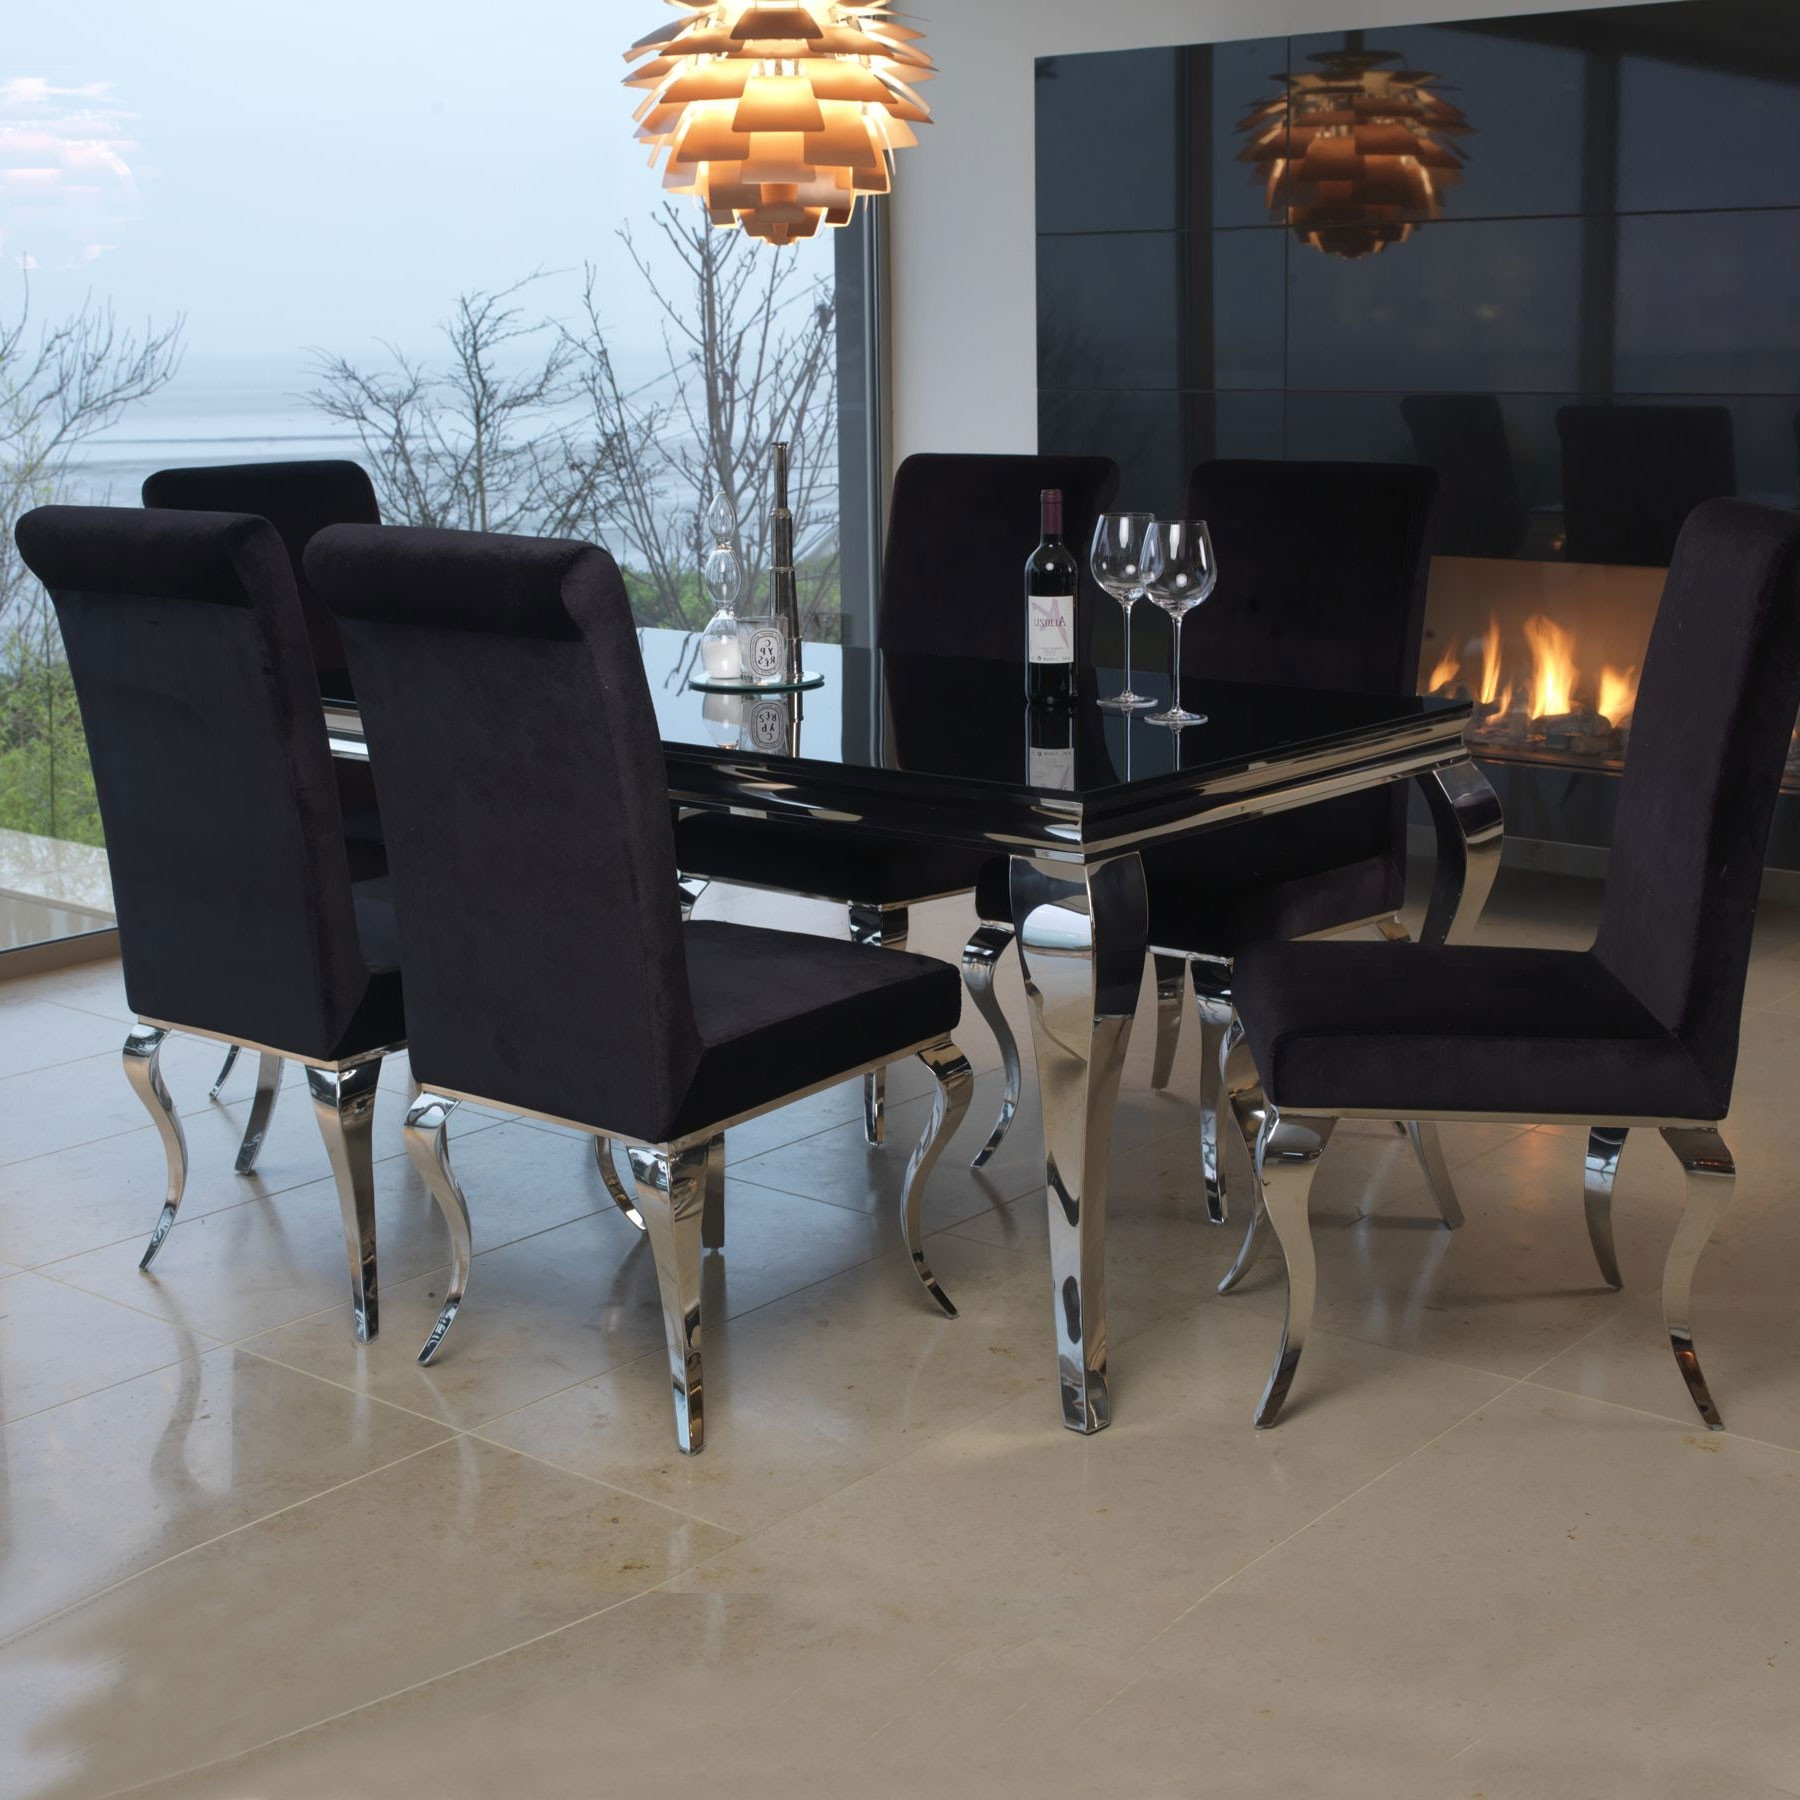 Louis Black Glass 200Cm Dining Table & 6 Chairs Intended For Most Popular Black Glass Dining Tables With 6 Chairs (View 15 of 25)